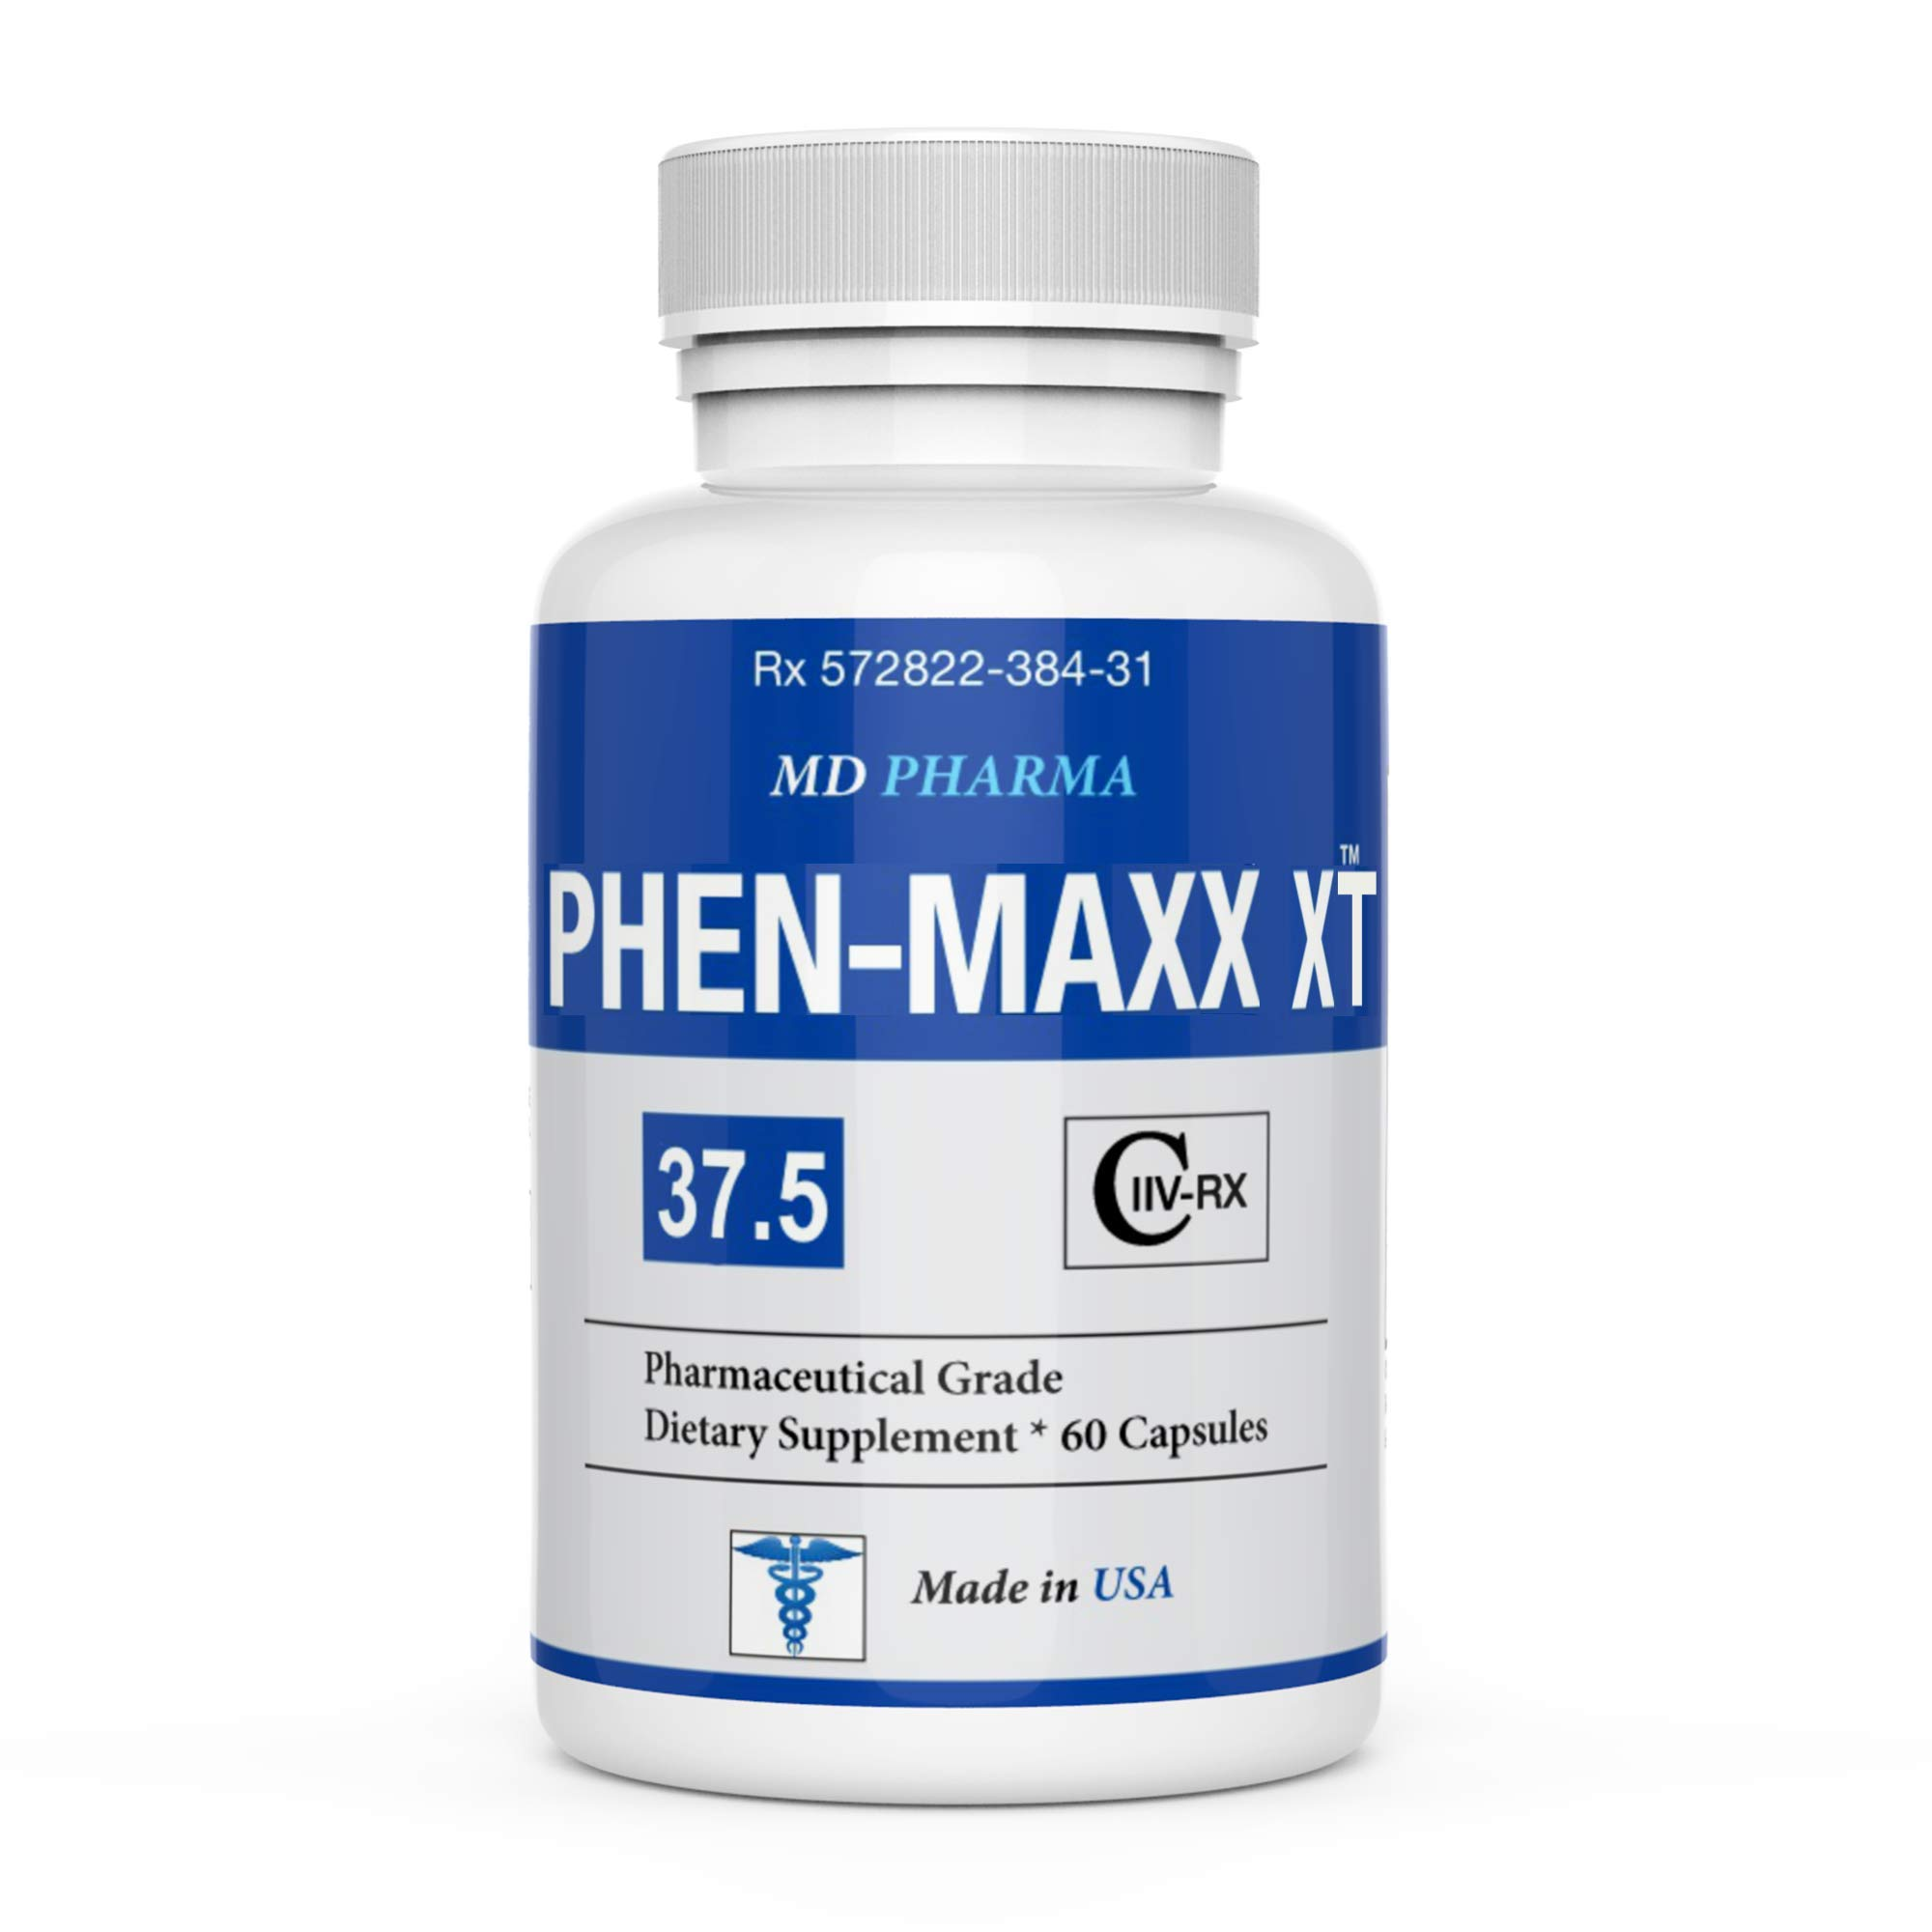 PHEN-MAXX XR 37.5 ® (Pharmaceutical Grade OTC - Over The Counter - Weight Loss Diet Pills) - Advanced Appetite Suppressant - Increase Energy - Clinically Proven Ingredients by PHEN MAXX XR 37.5 - Appetite Suppressant & Fat Burner